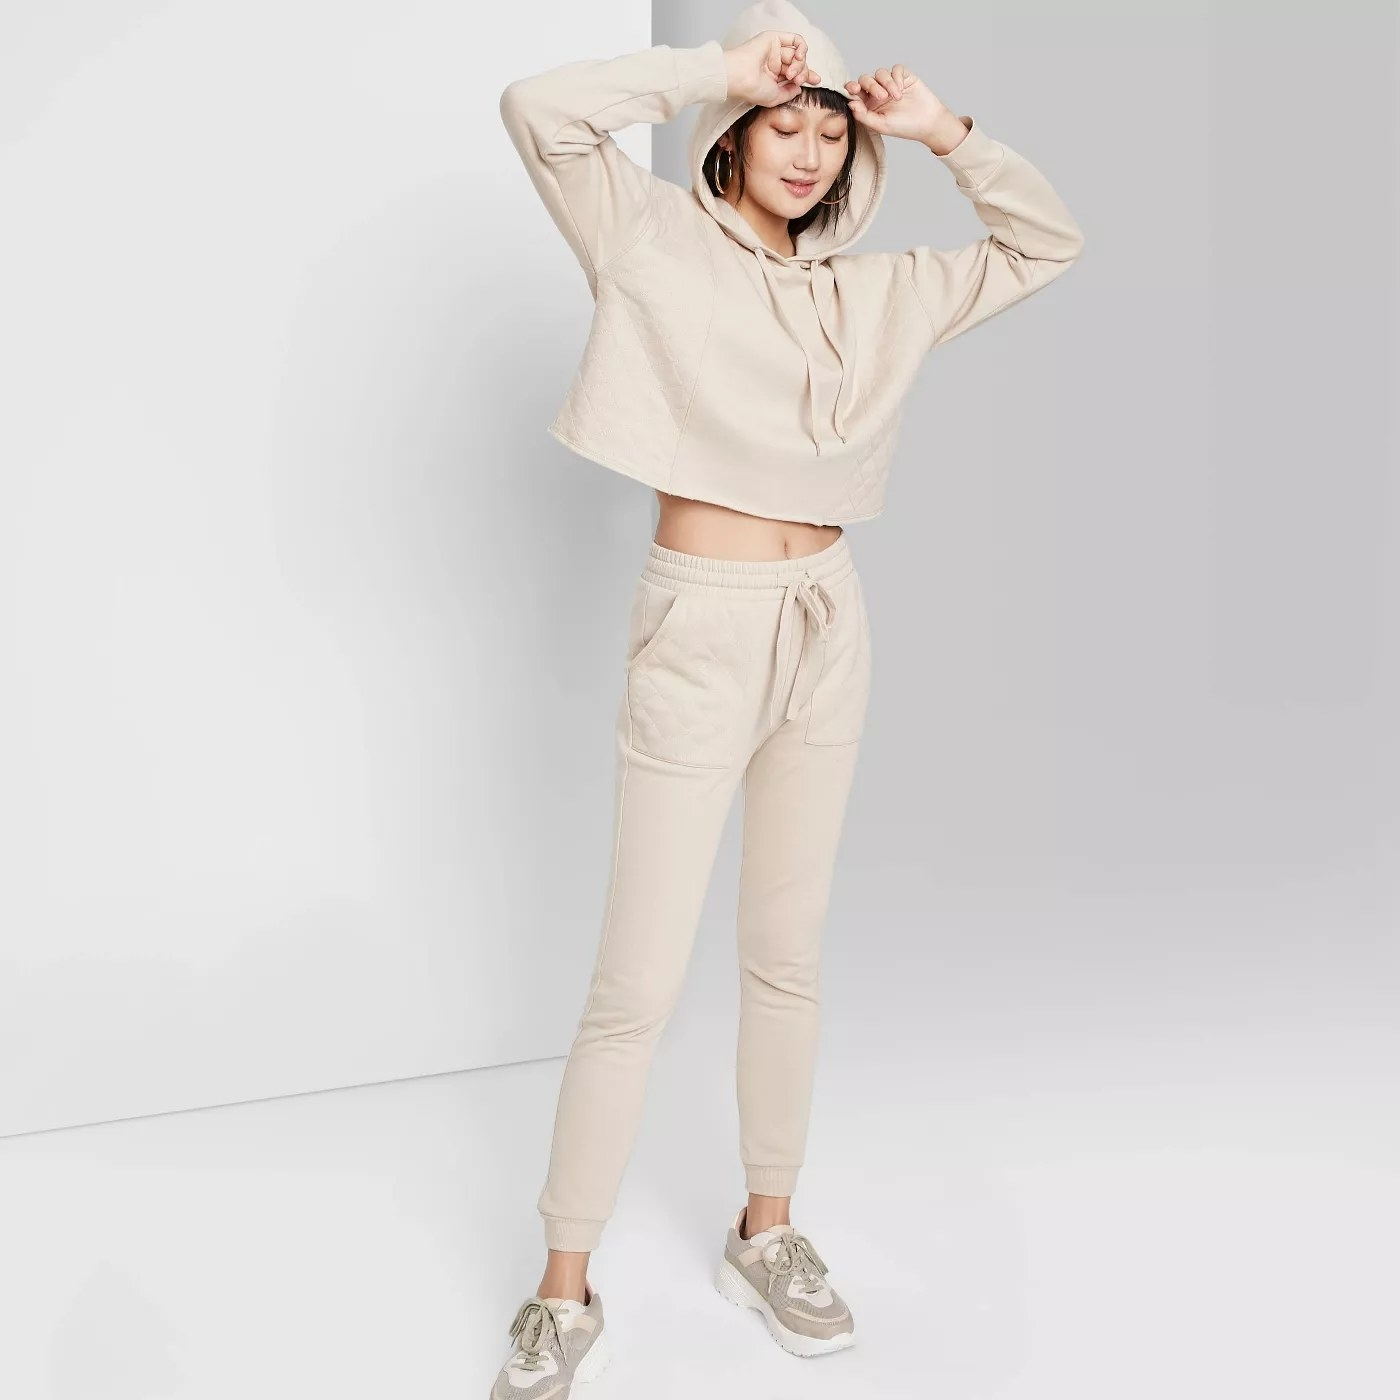 A model wearing the beige, high-waisted joggers with a matching hoodie